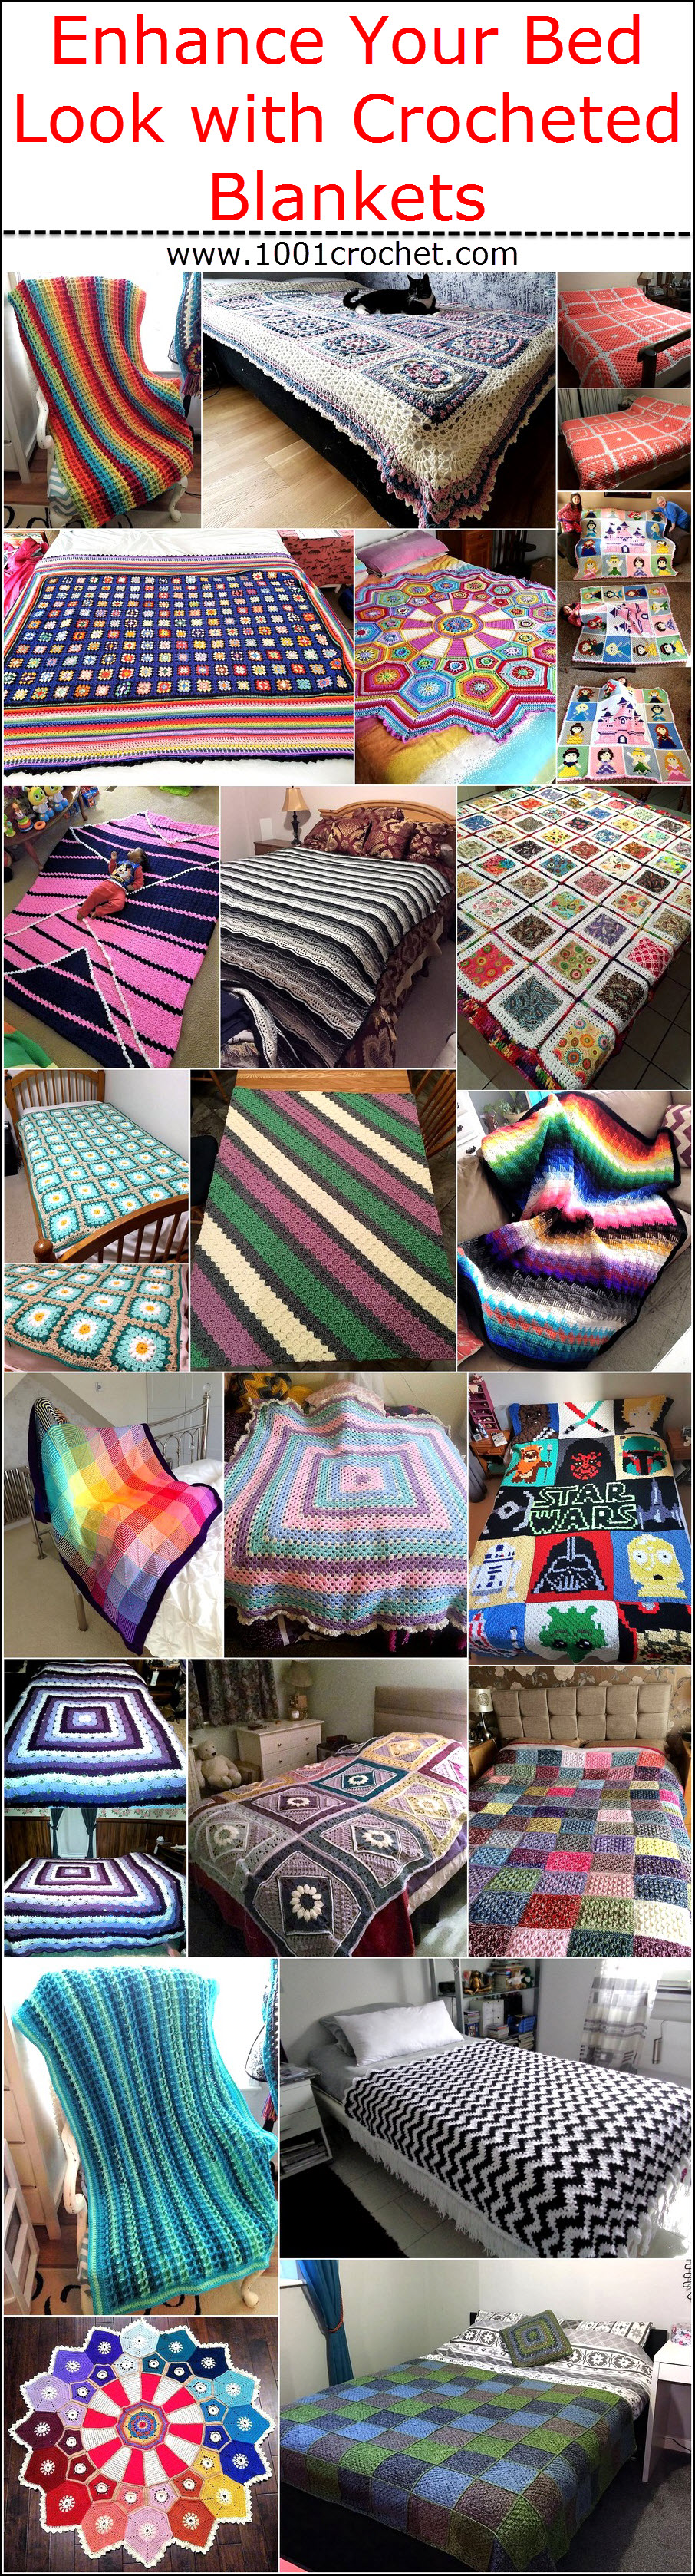 Enhance Your Bed Look with Crocheted Blankets